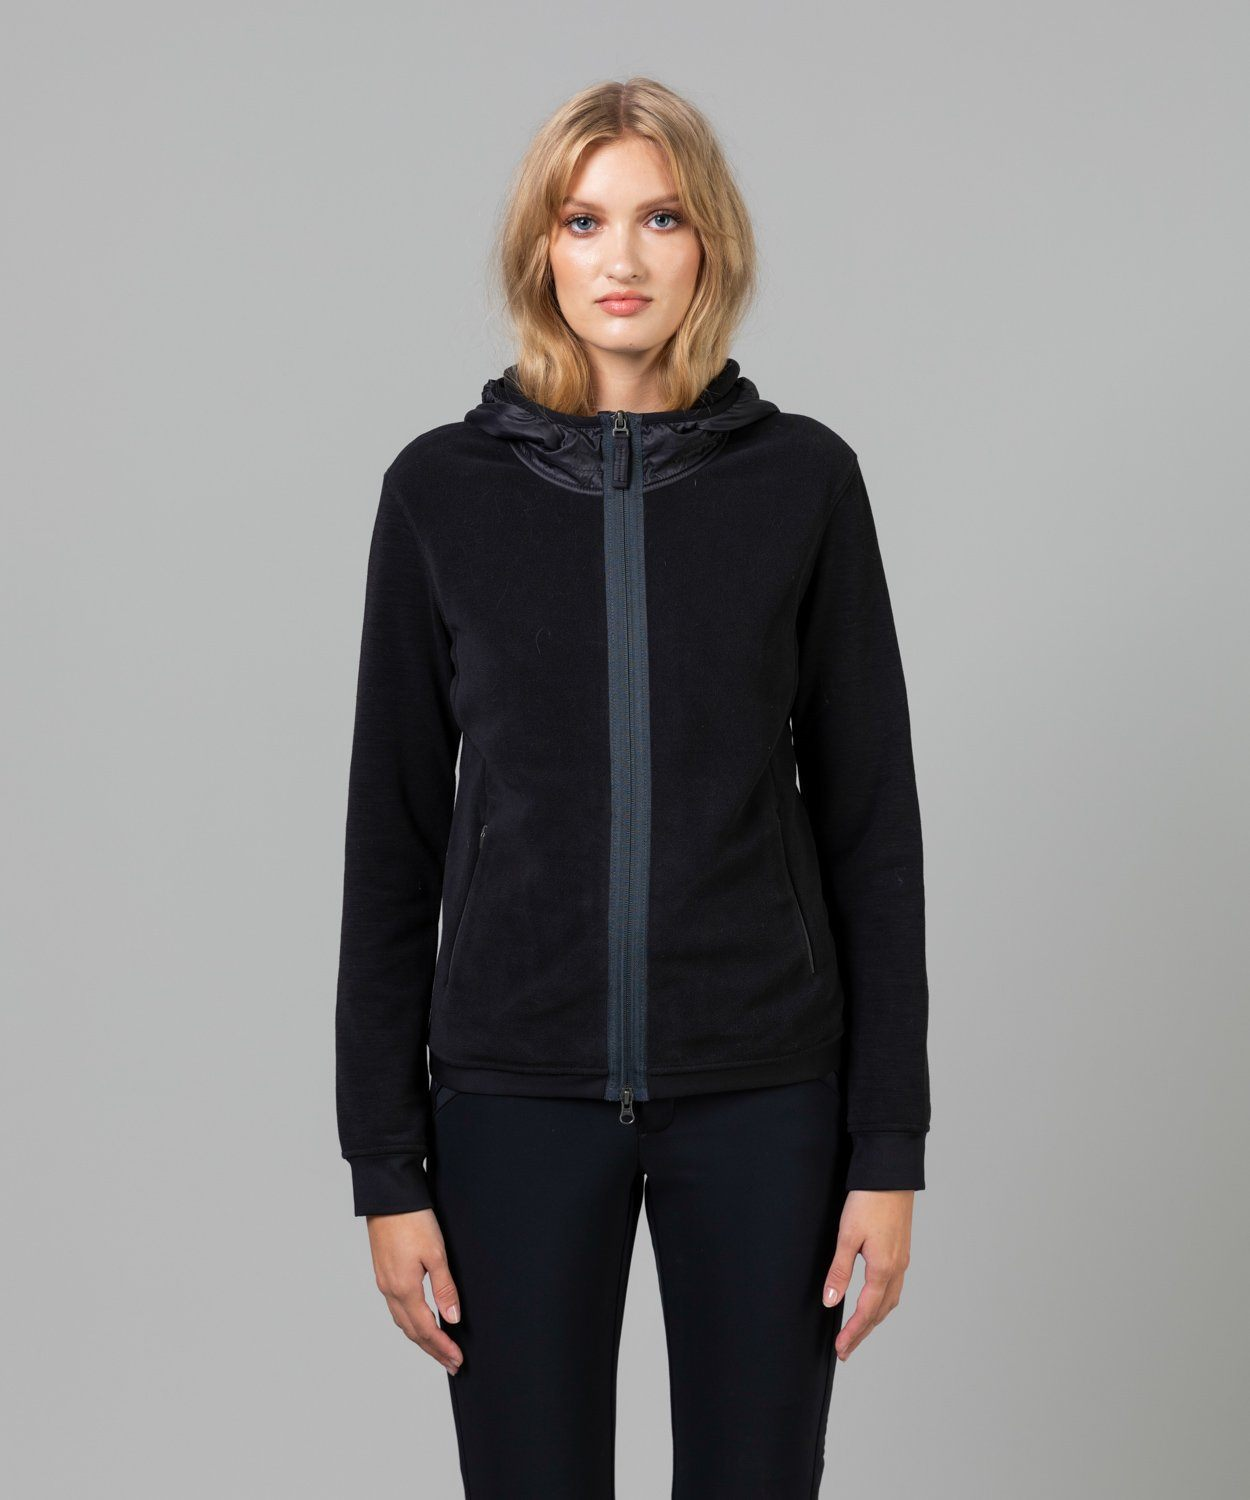 Women's Isla Multi Fleece Jacket Mid Layer Frauenschuh Black S